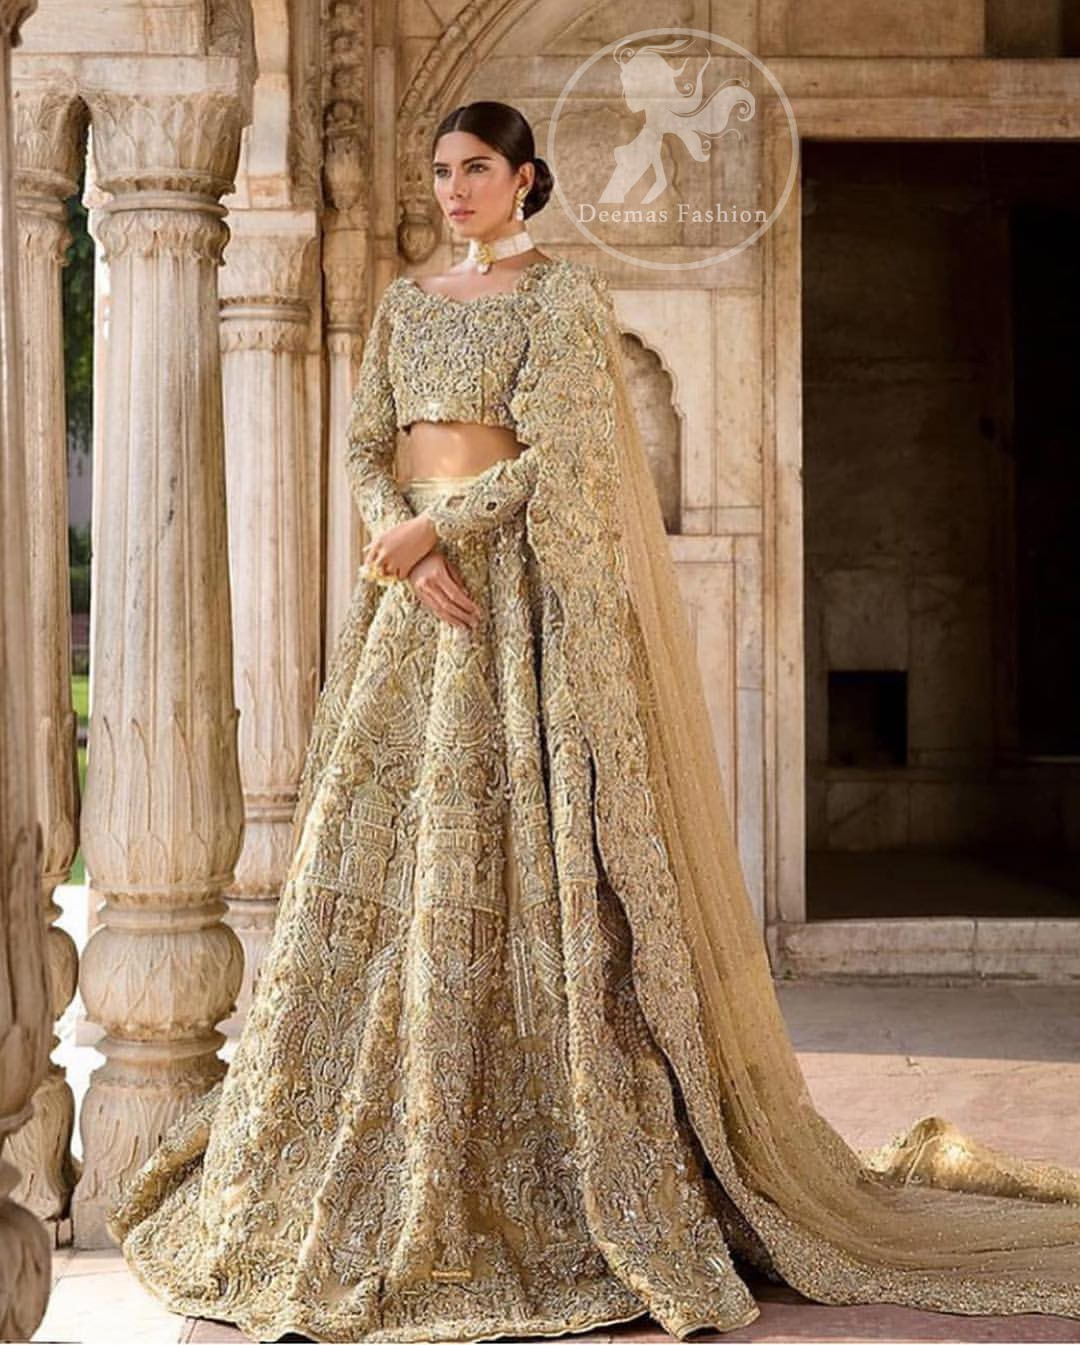 The grand gold bridal stands out due to its uniqueness and the perfect fusion of modern cut and traditional embroidery. This outfit is made of rich floral embroidery and different styles motifs which is further enhanced with zardoze work. It is highlighted with kora, dabka, tilla, sequins and pearls. Heavily embellished lehnga with embroidered motifs spread all over and finished with thick kora and dabka borders completes the look. It is coordinated with beautiful dupatta with thick matha patti border on the front and intricate beautiful border on all rest of the three sides. Furthermore it is enhanced with sprinkled sequins all over it.